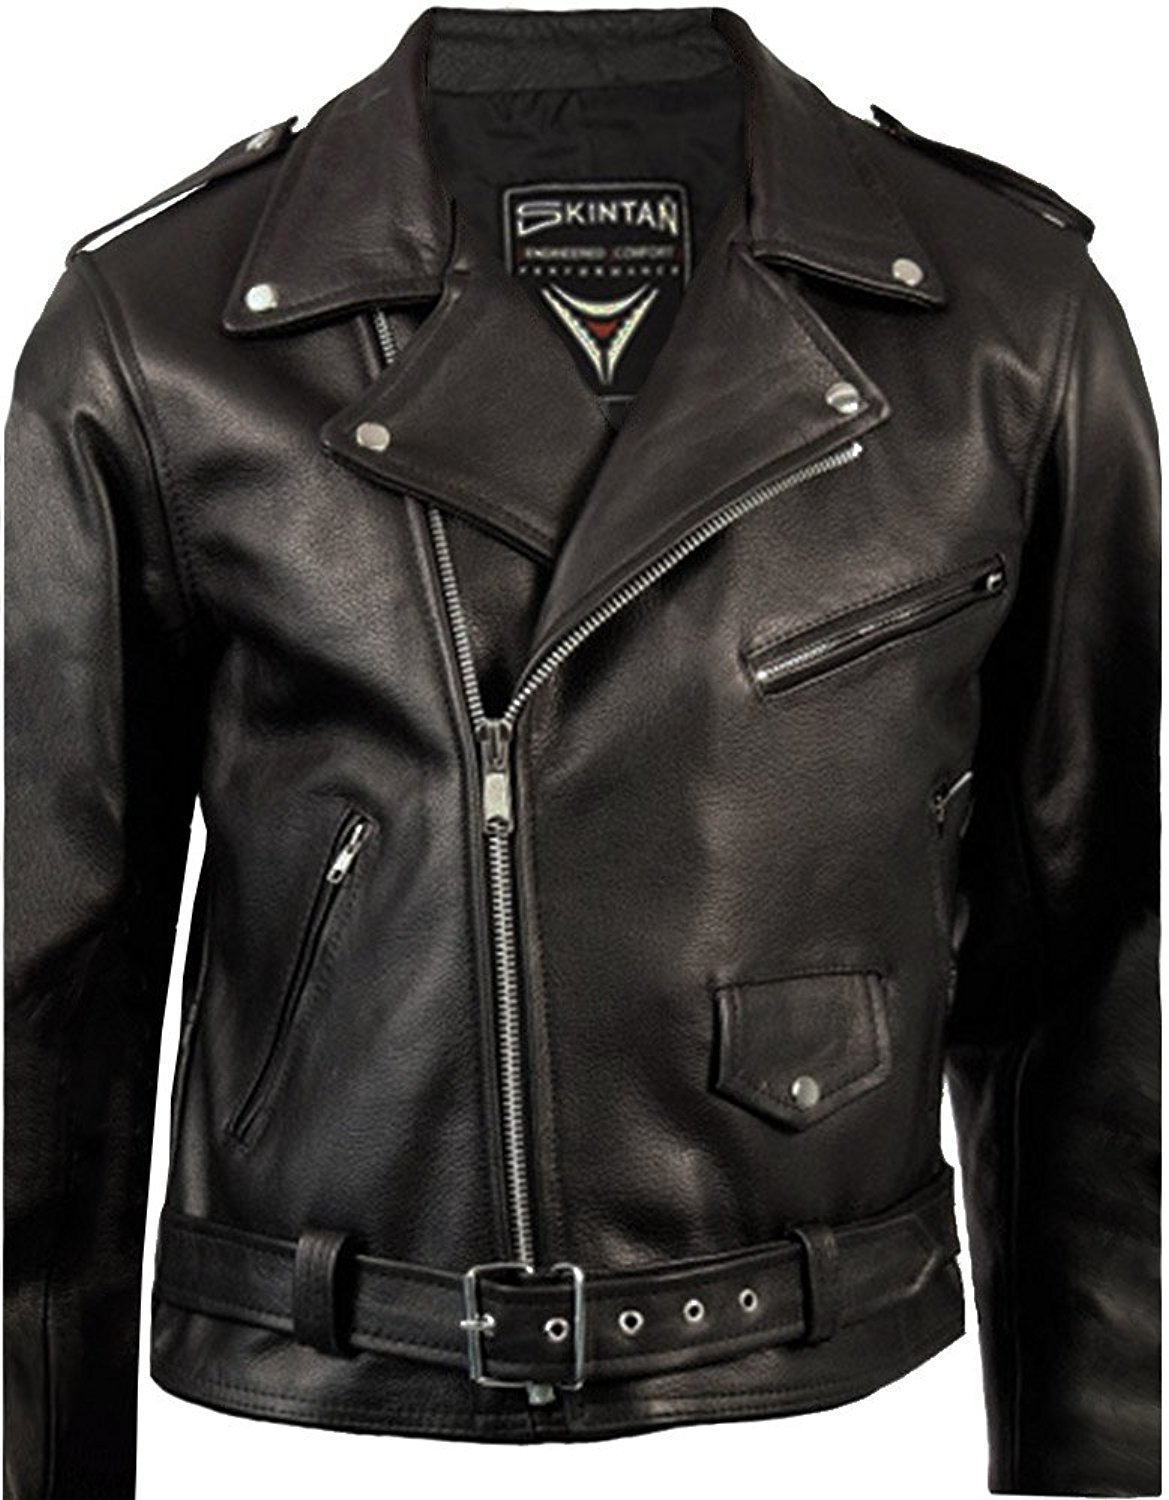 fa9dcf9ac43 Get Quotations · HWK Clasic Leather Brando Motorcycle Jacket Coat Motorbike  Jacket Biker Breathable 1 YEAR WARRANTY!